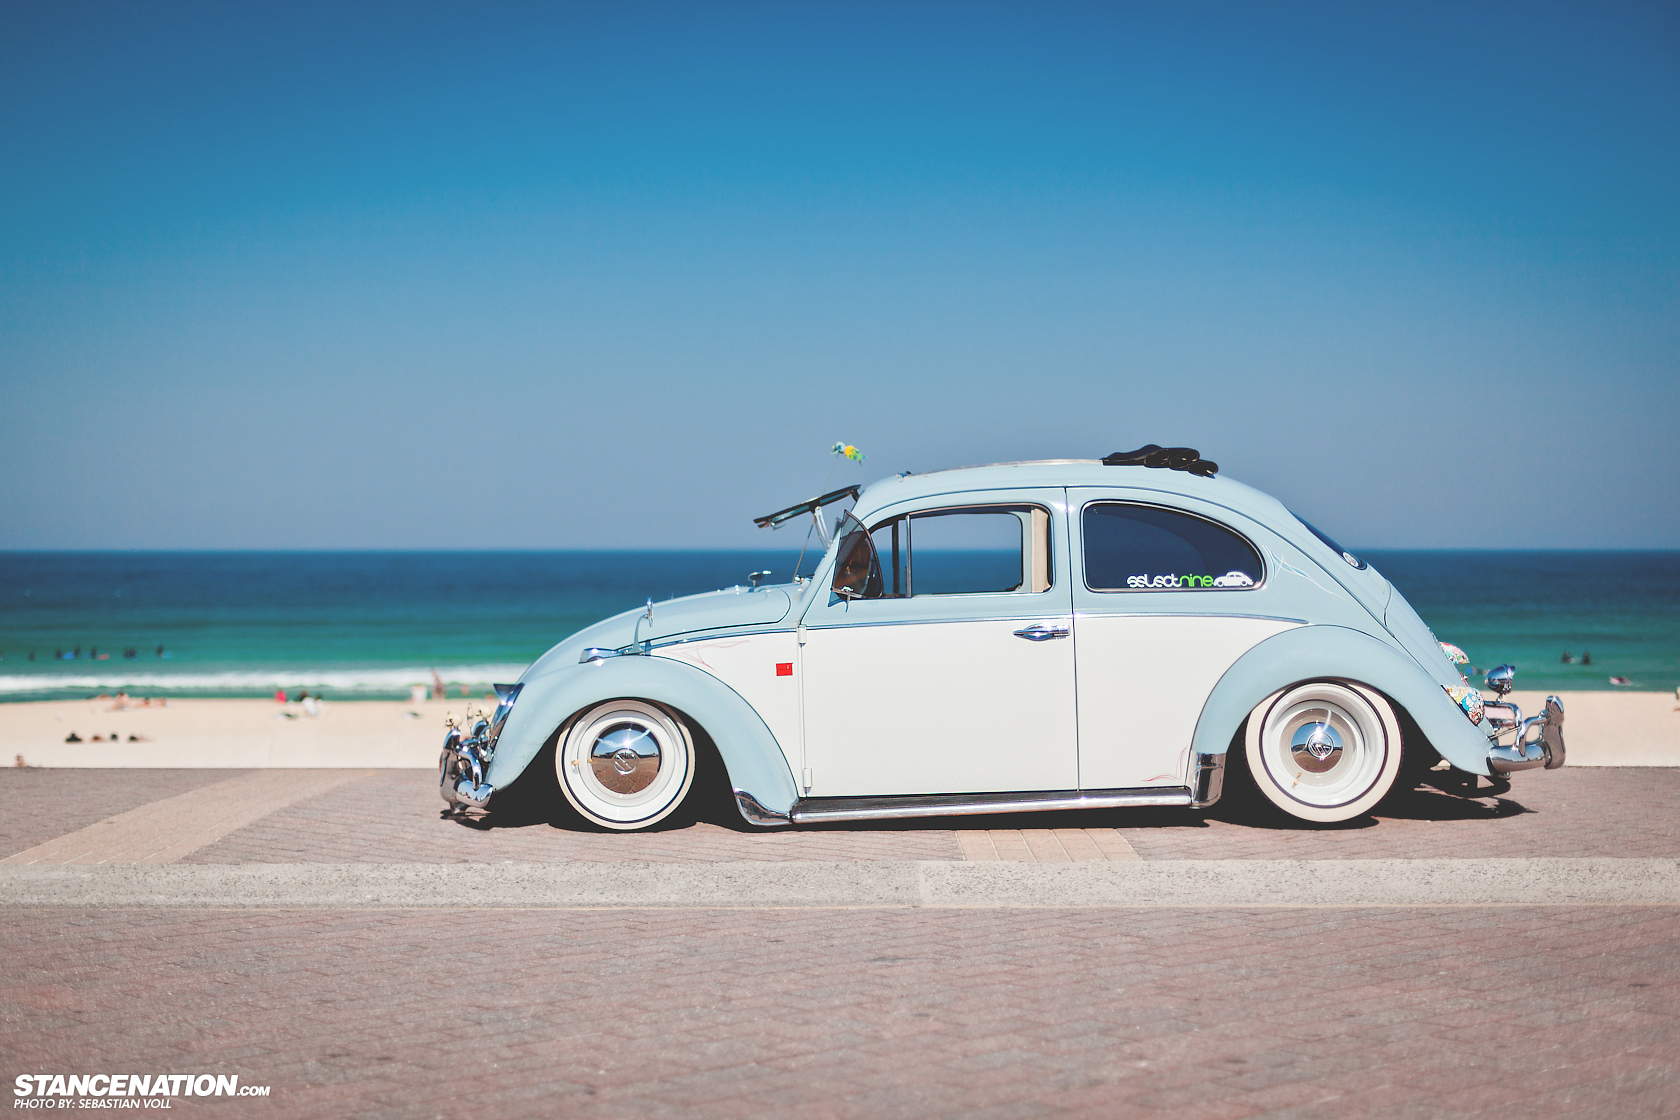 Buggin' // Bhathiya's Gorgeous VW Beetle. | StanceNation ...